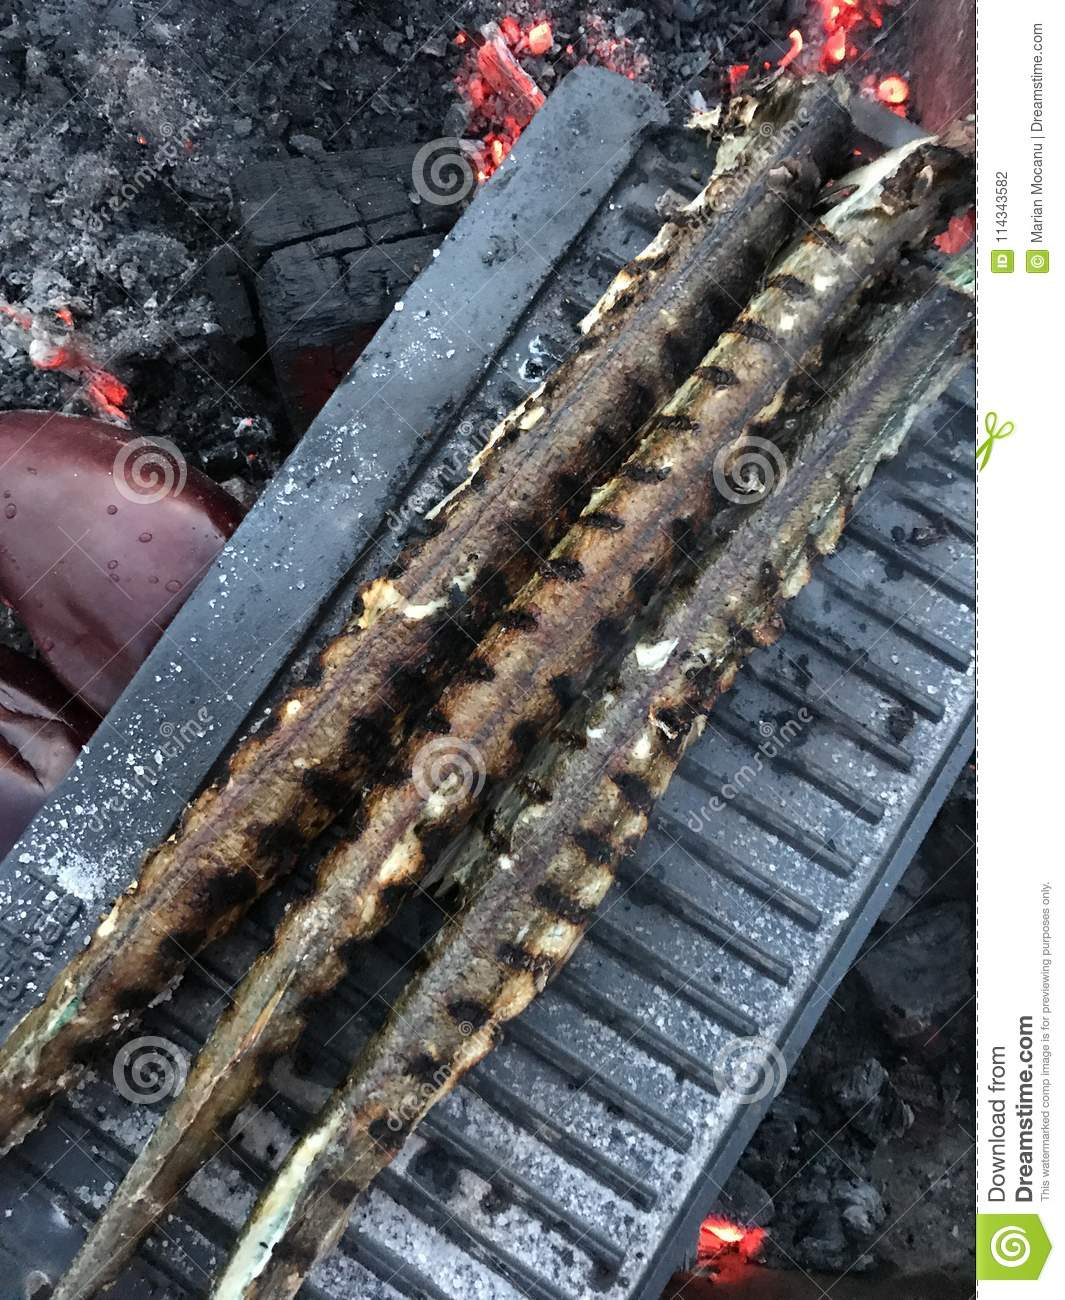 Three fish on grill - outdoor cooking